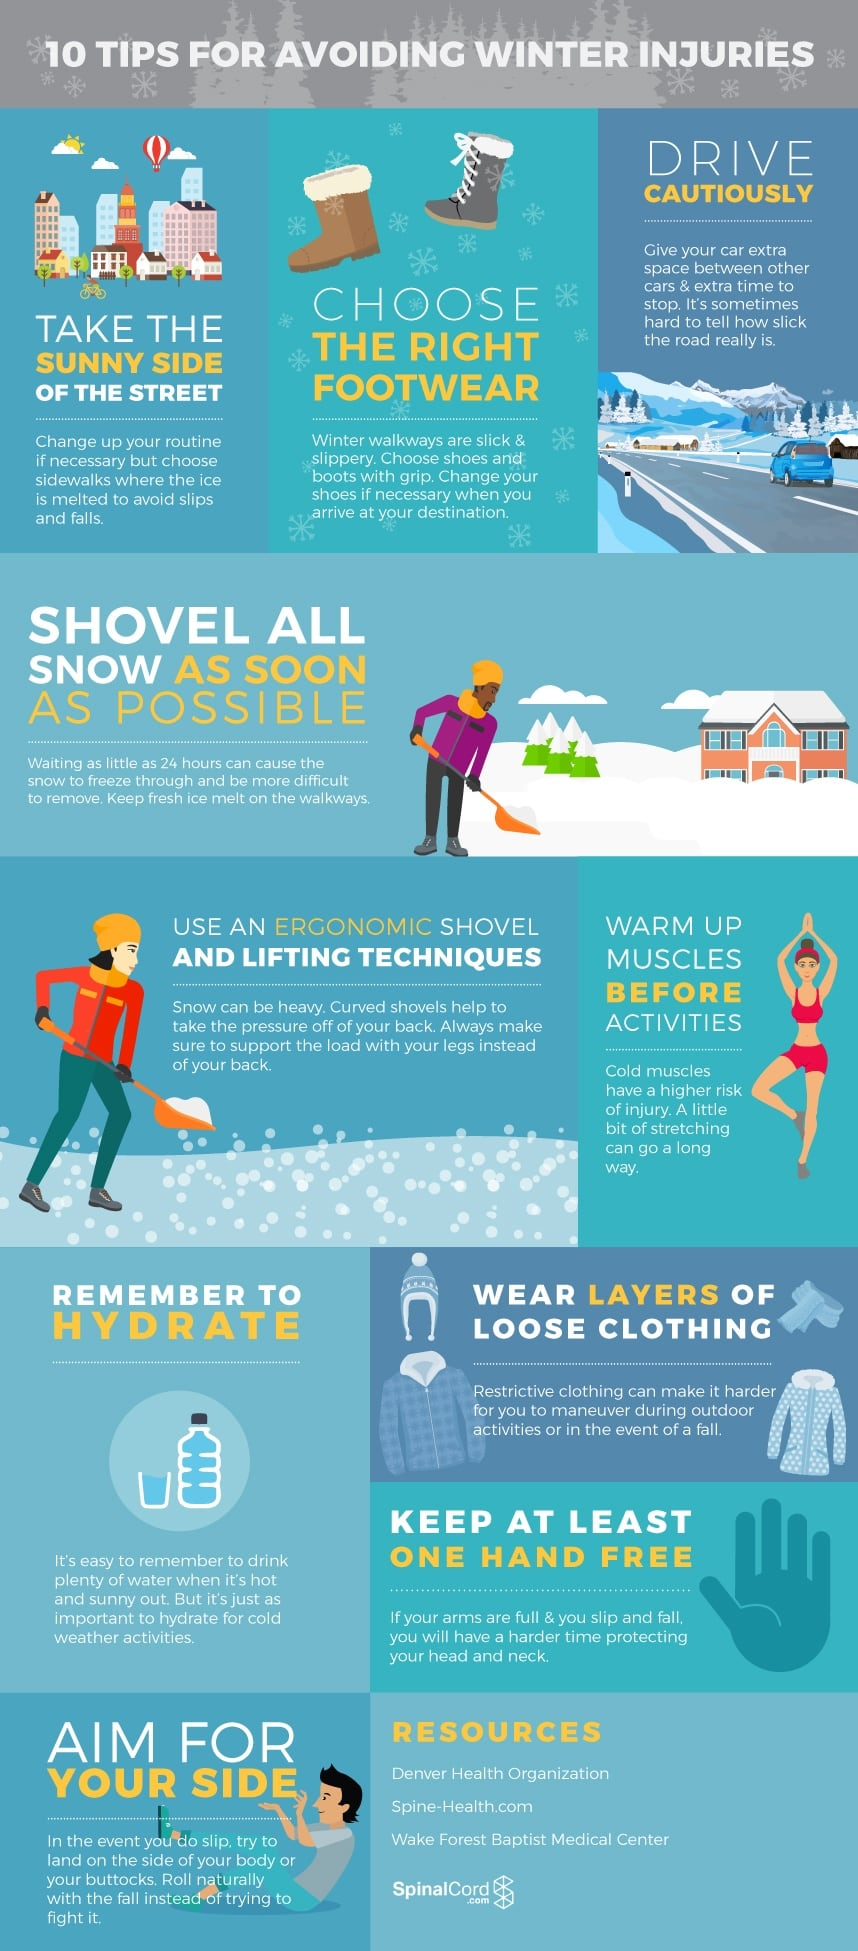 Avoiding Winter Injuries Infographic